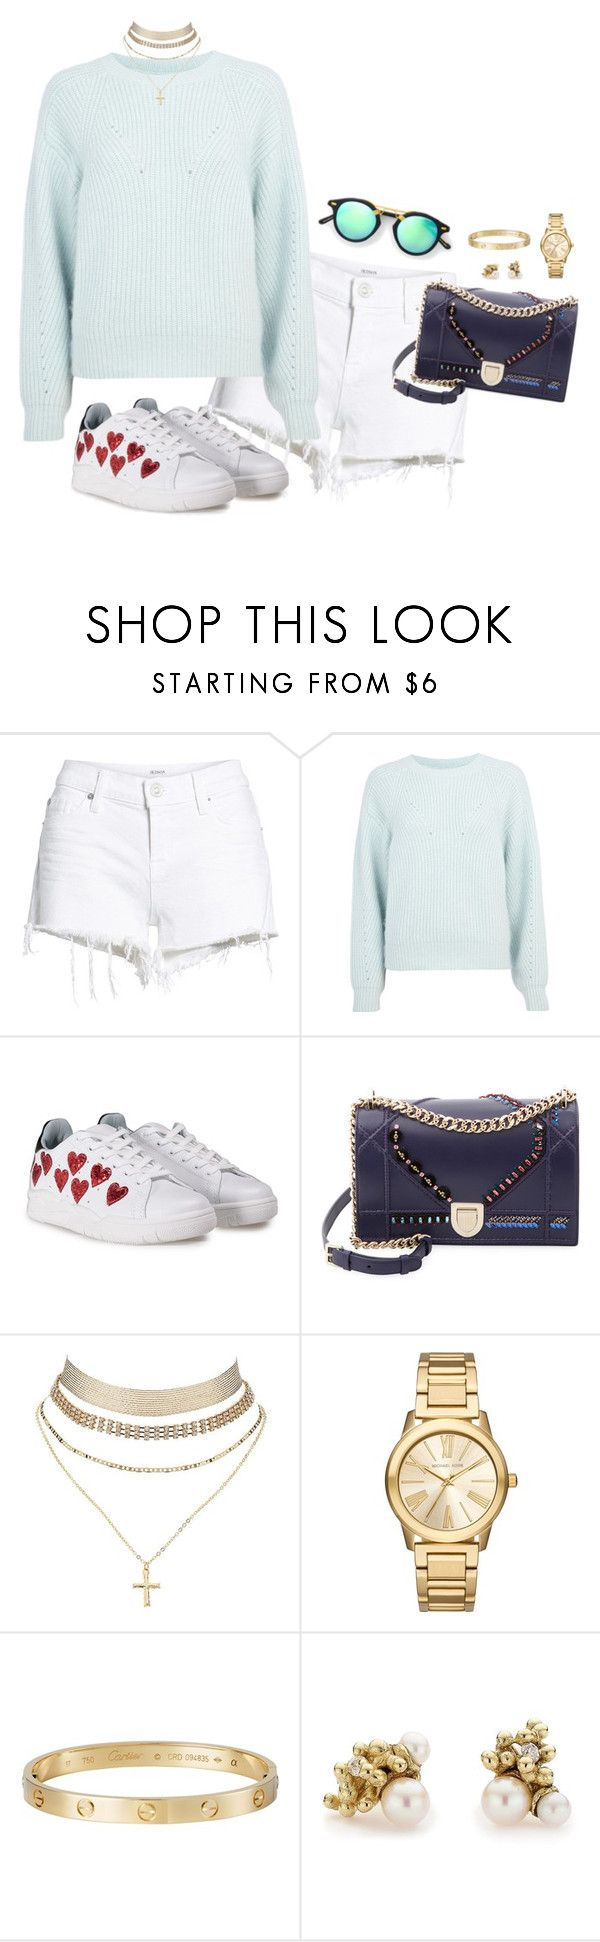 """Outfit"" by caa123 ❤ liked on Polyvore featuring Hudson Jeans, River Island, Chiara Ferragni, Christian Dior, Charlotte Russe, Michael Kors, Cartier, Ruth Tomlinson and Club Monaco"